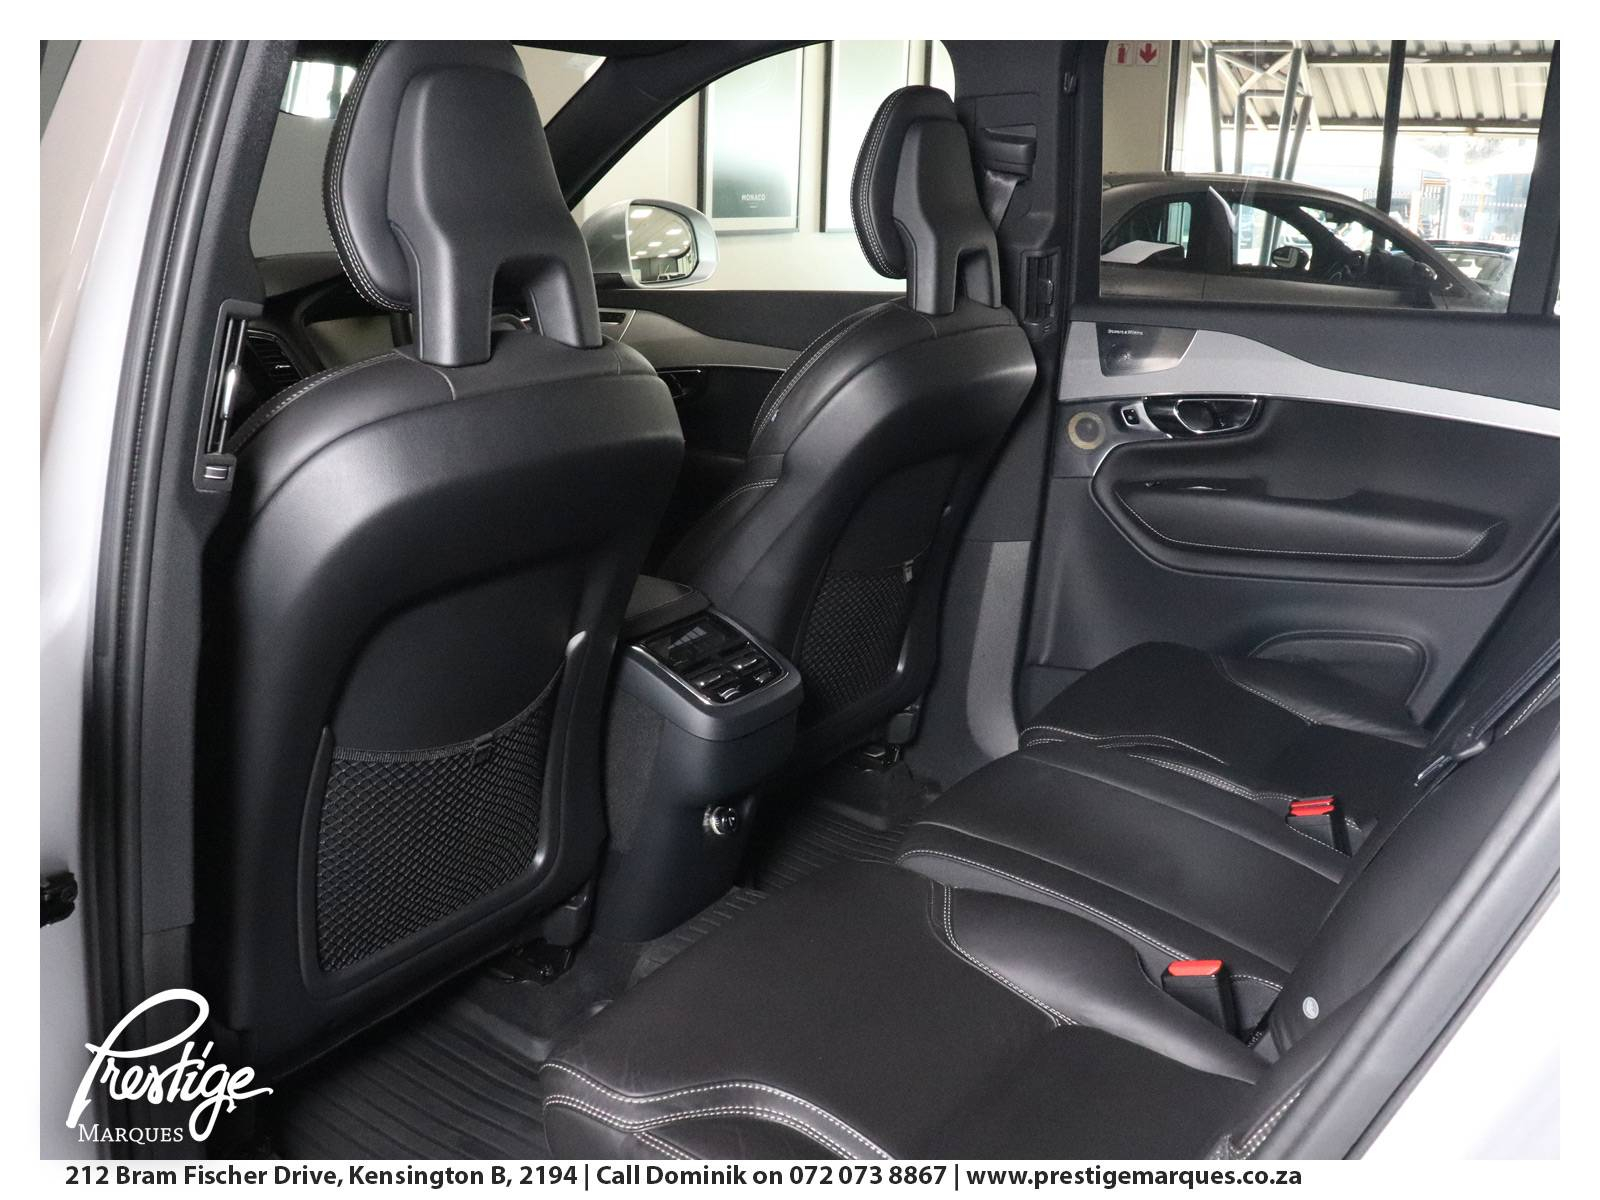 Volvo-XC90-D5-Inscription-Prestige-Marques-Randburg-Sandton-14